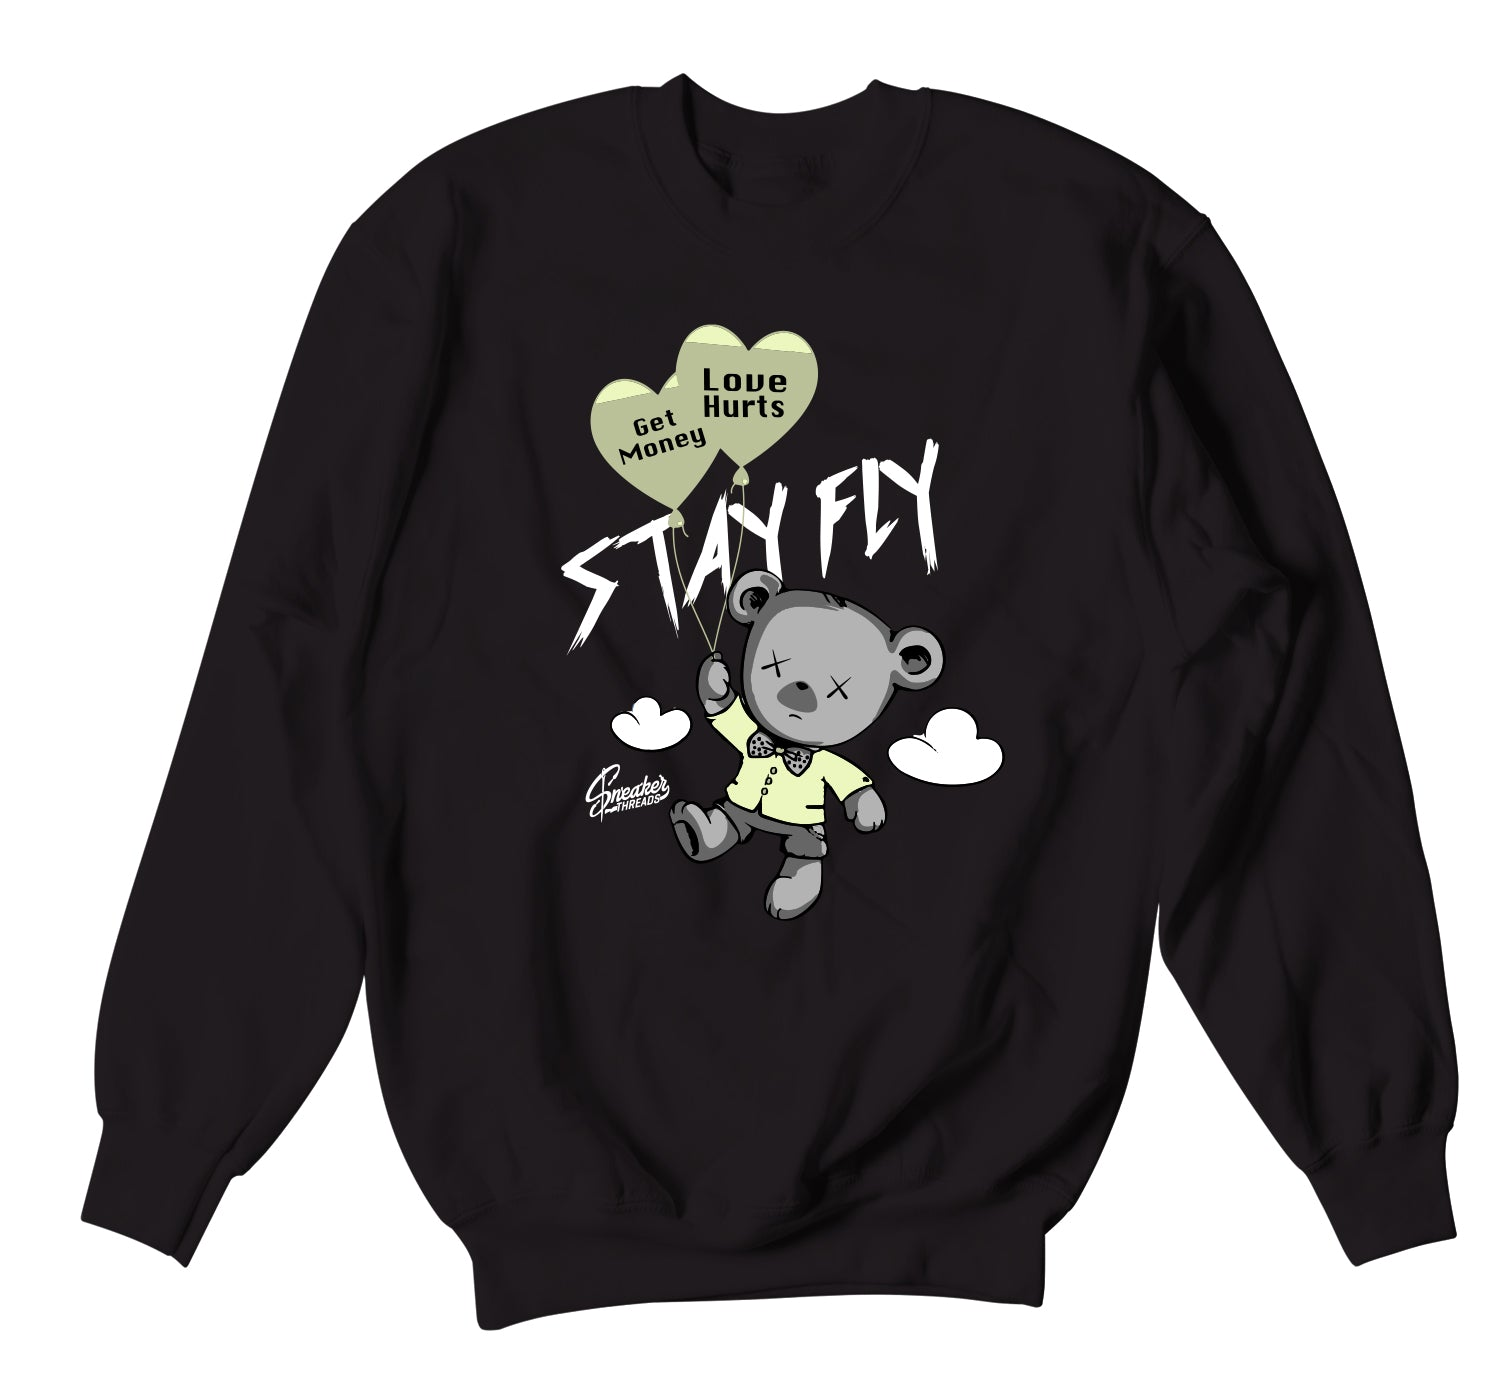 Yeezy Yeshaya Money Over Love Sweater